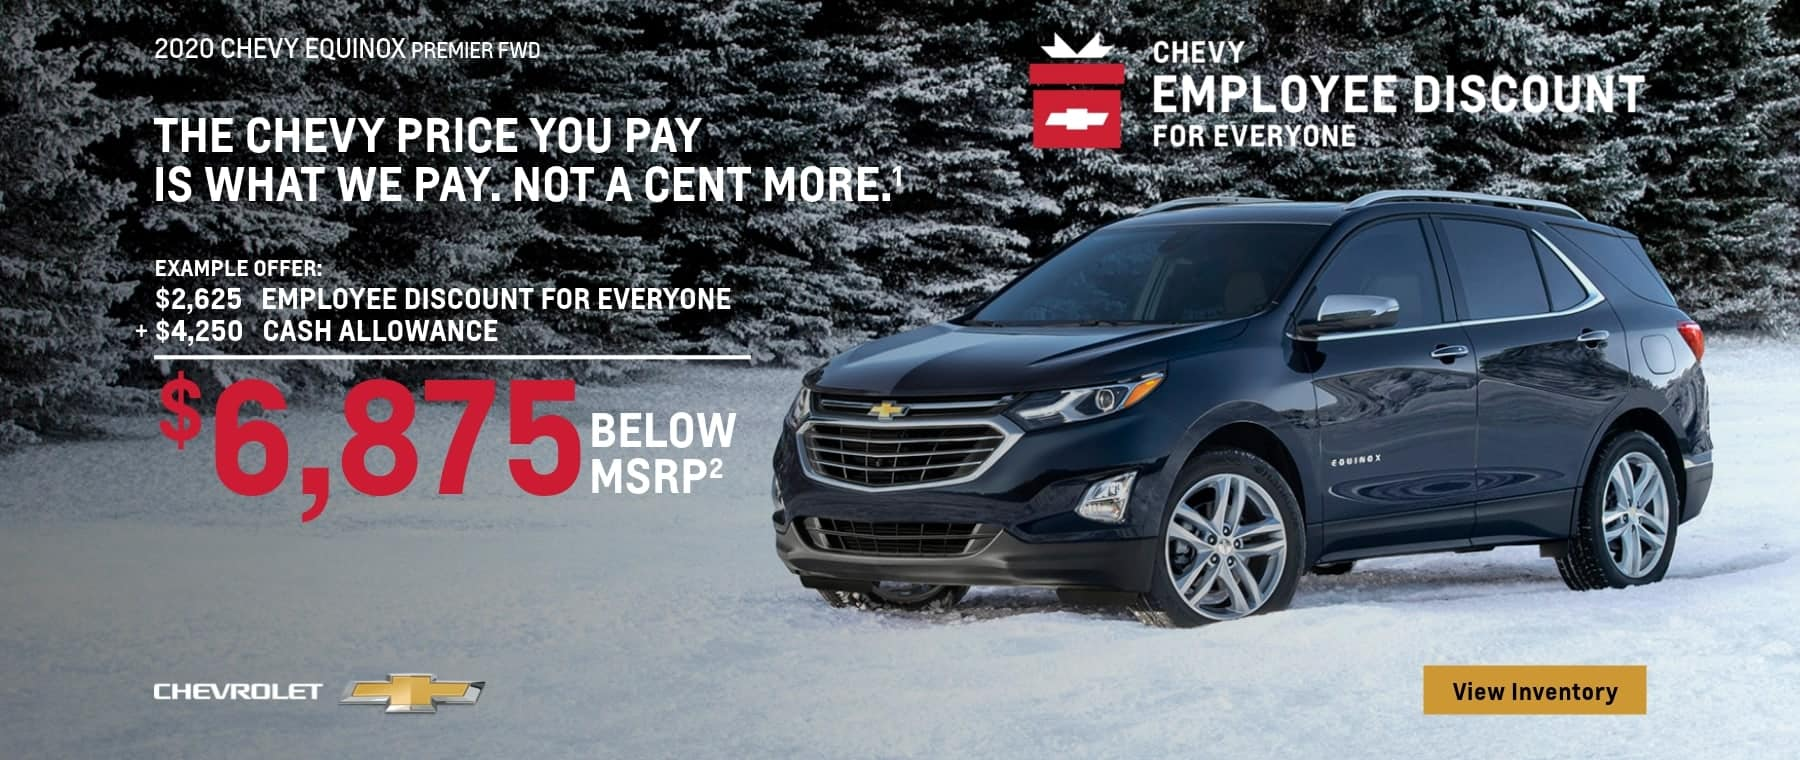 The Chevy Employee Discount For Everyone. The Chevy Price you pay is what we pay. Not a cent more. $6,875 Below MSRP on this 2020 Equinox Premier FWD